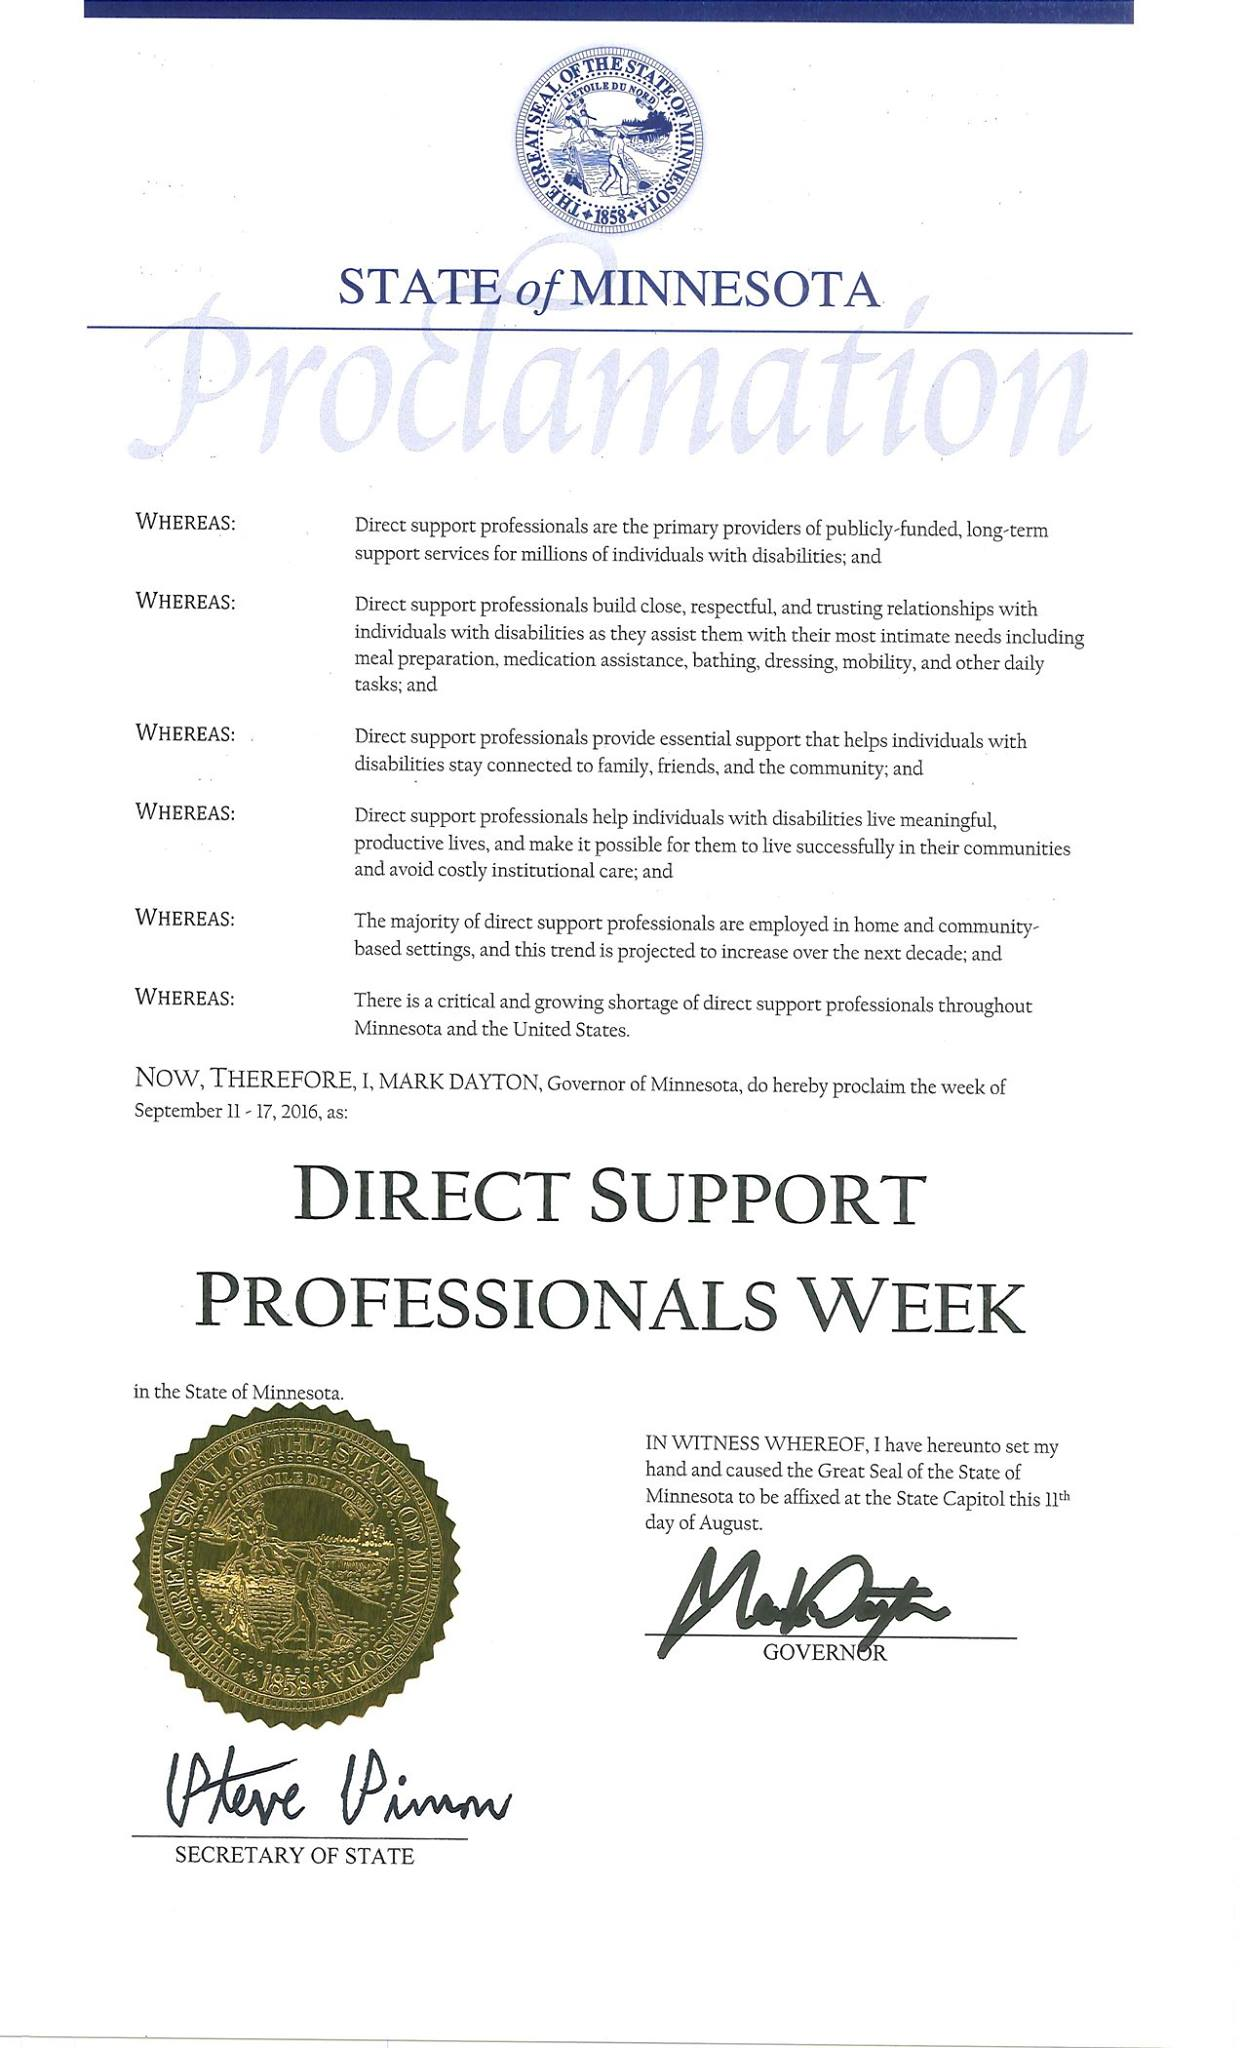 Governor Mark Dayton formally declared September 11-17 as Direct Support Professionals Week